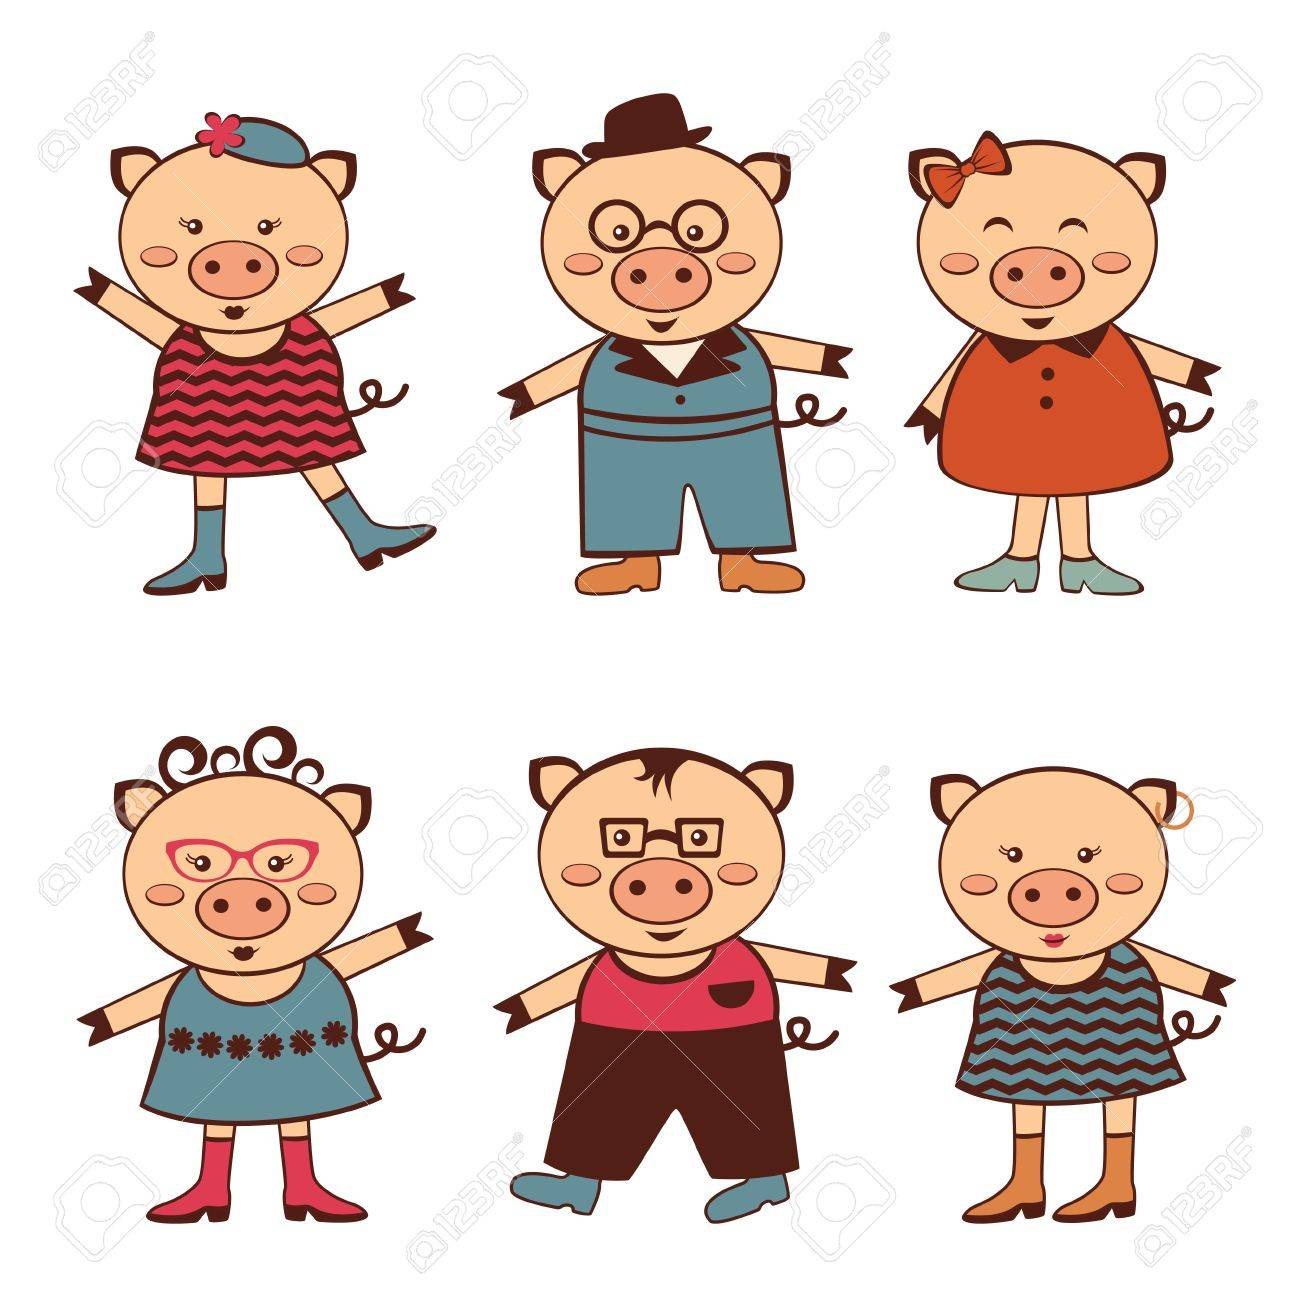 An illustration of cute pigs characters Stock Vector - 16980203